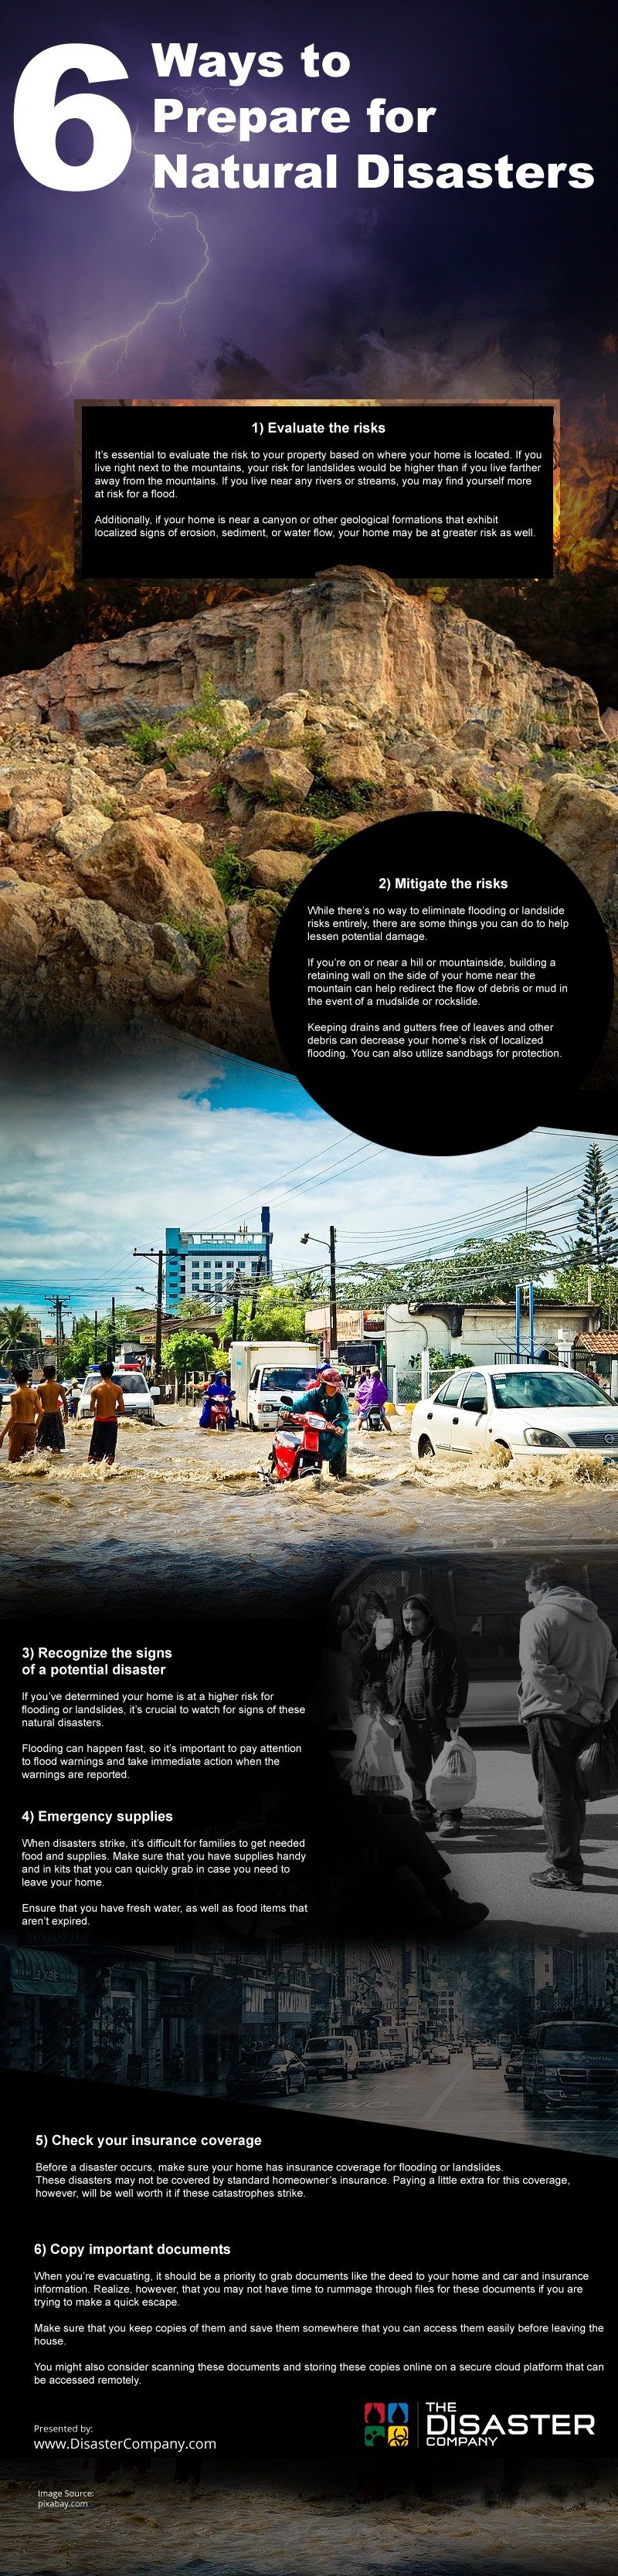 6 Ways to Prepare for Natural Disasters [infographic]